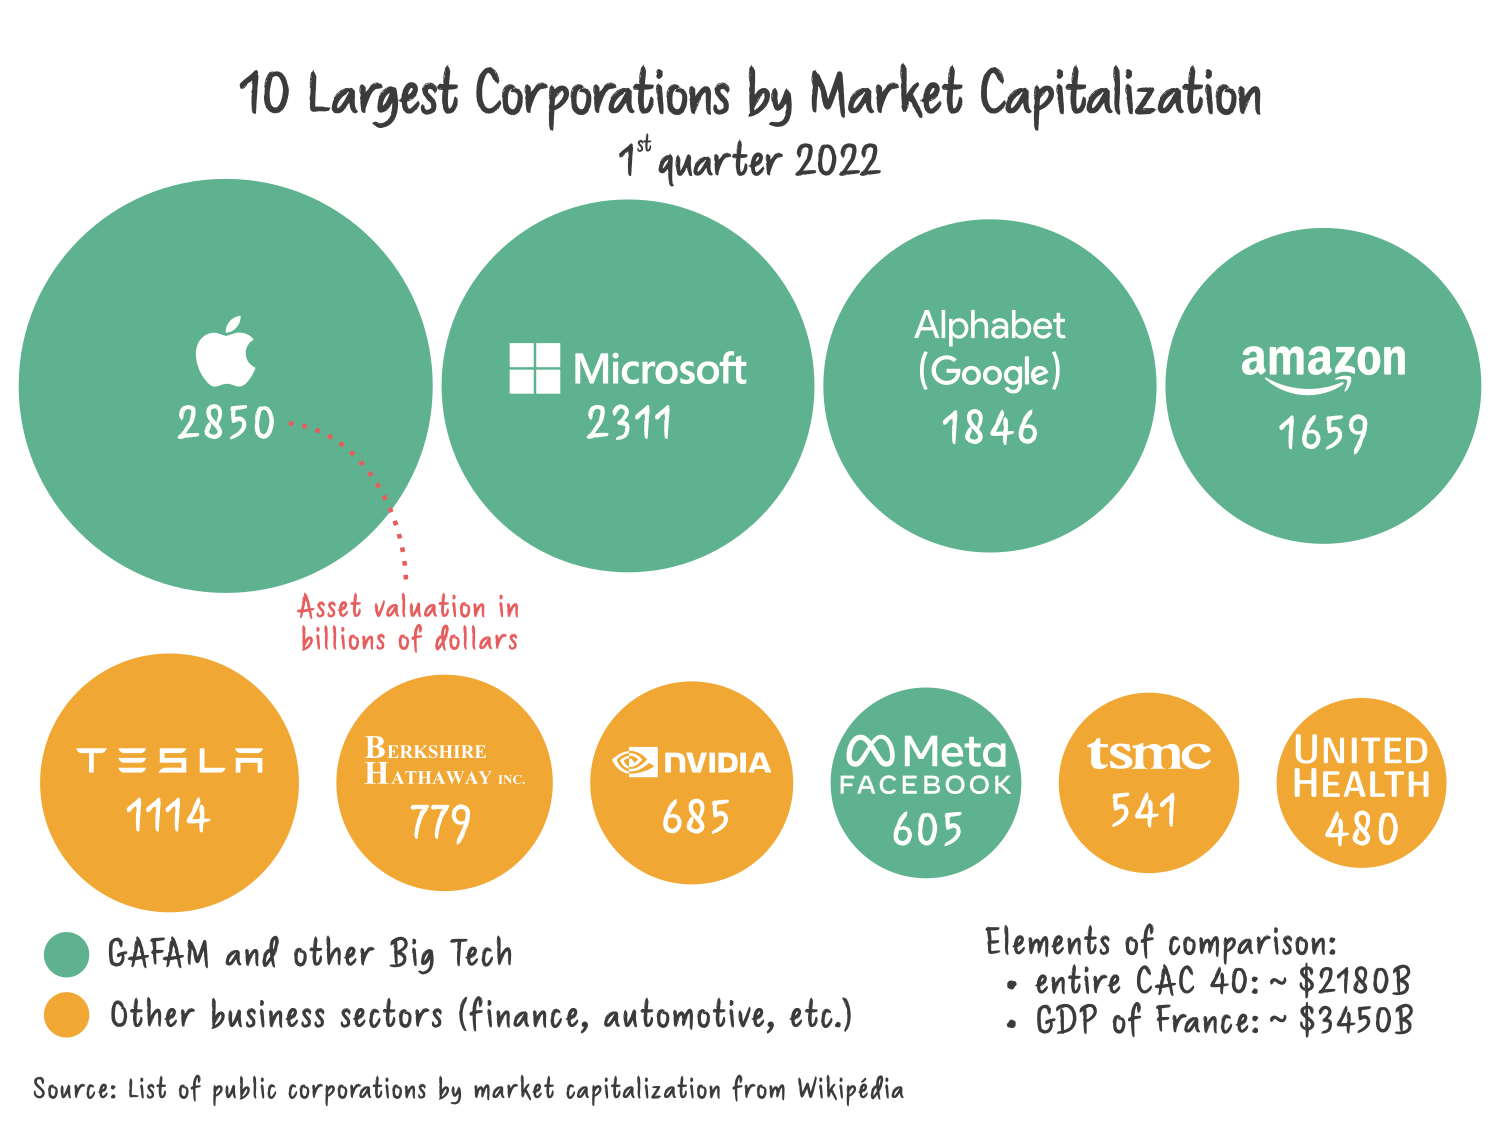 https://upload.wikimedia.org/wikipedia/commons/d/df/10_Largest_Corporations_by_Market_Capitalization.png